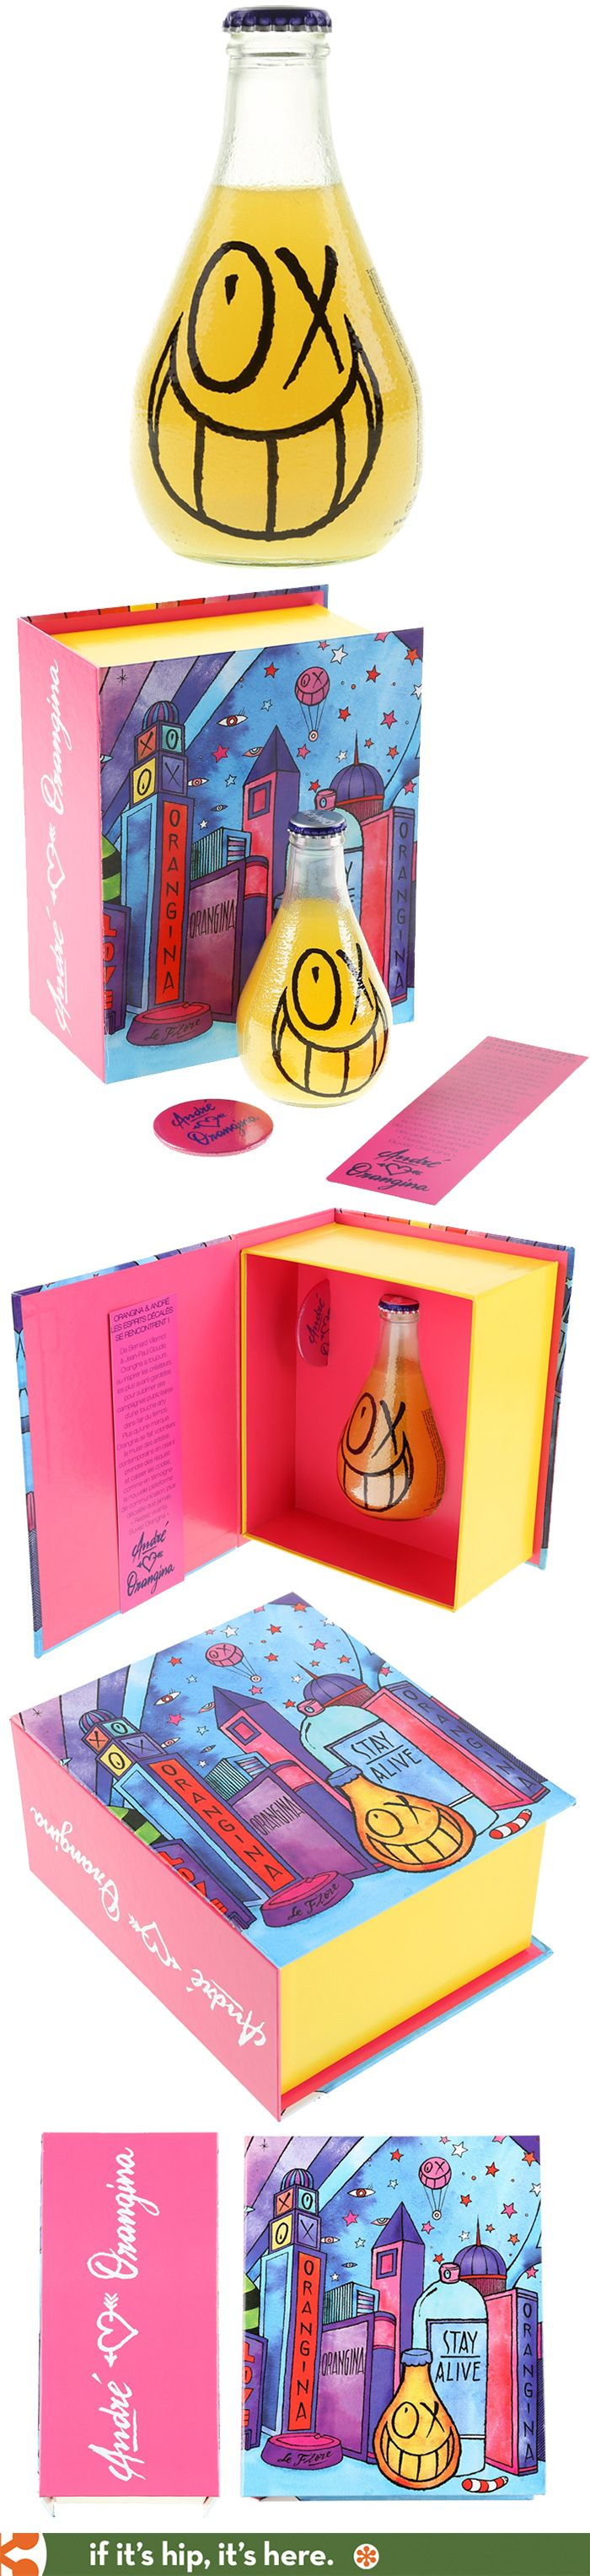 Special boxed edition of bottled Orangina by artist André